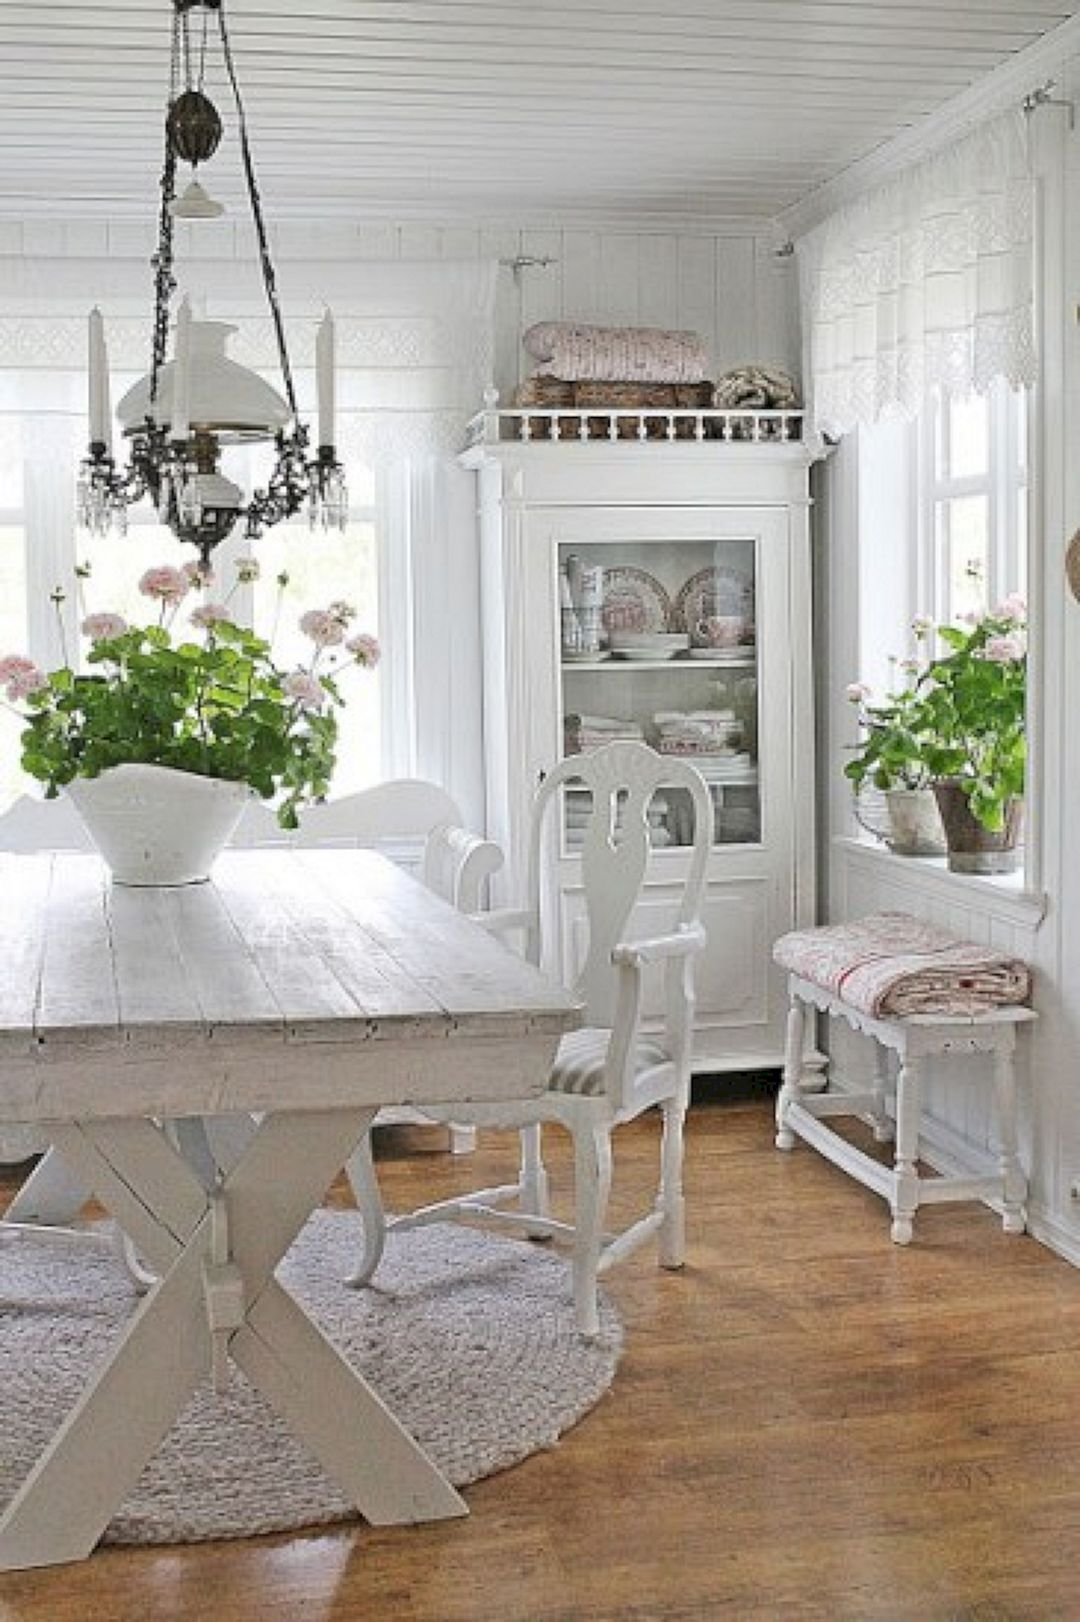 Top Swedish Scandinavian Farmhouse Style for Your Home and Apartment (No 37) #scandinavianfarmhousestyle